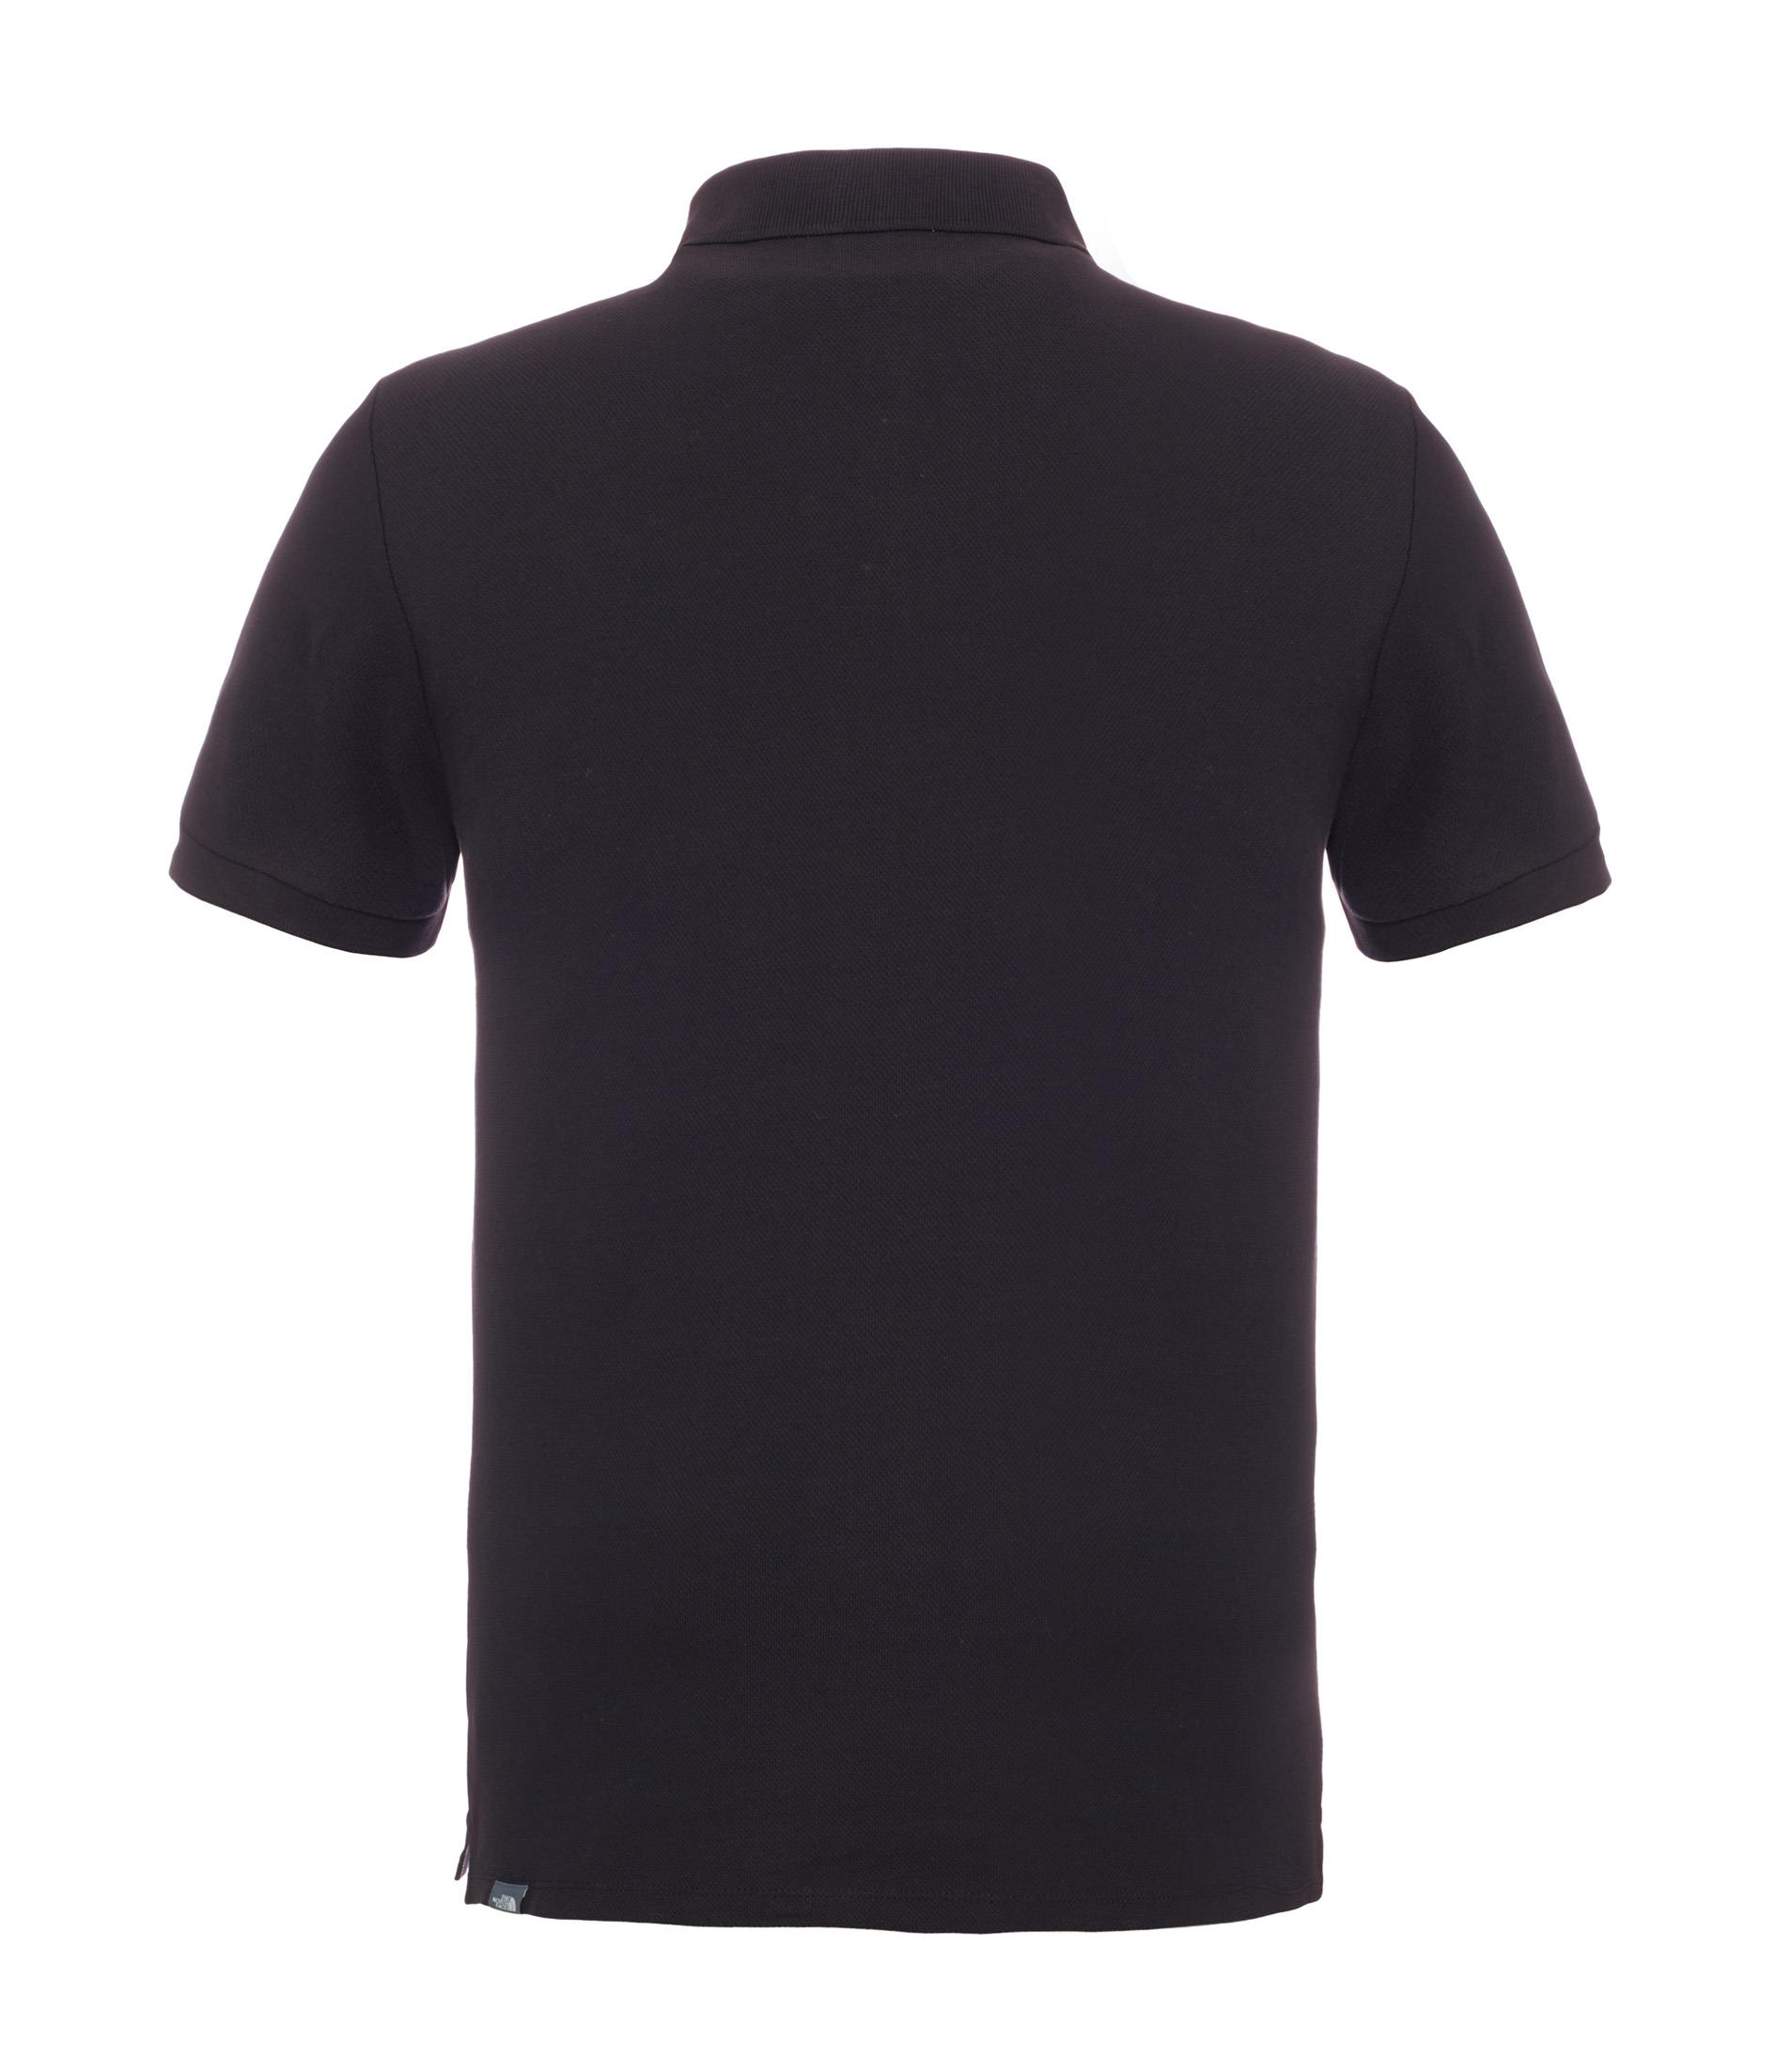 The Northface Erkek Premium Polo Pique Tişört T0Cev4Kx7